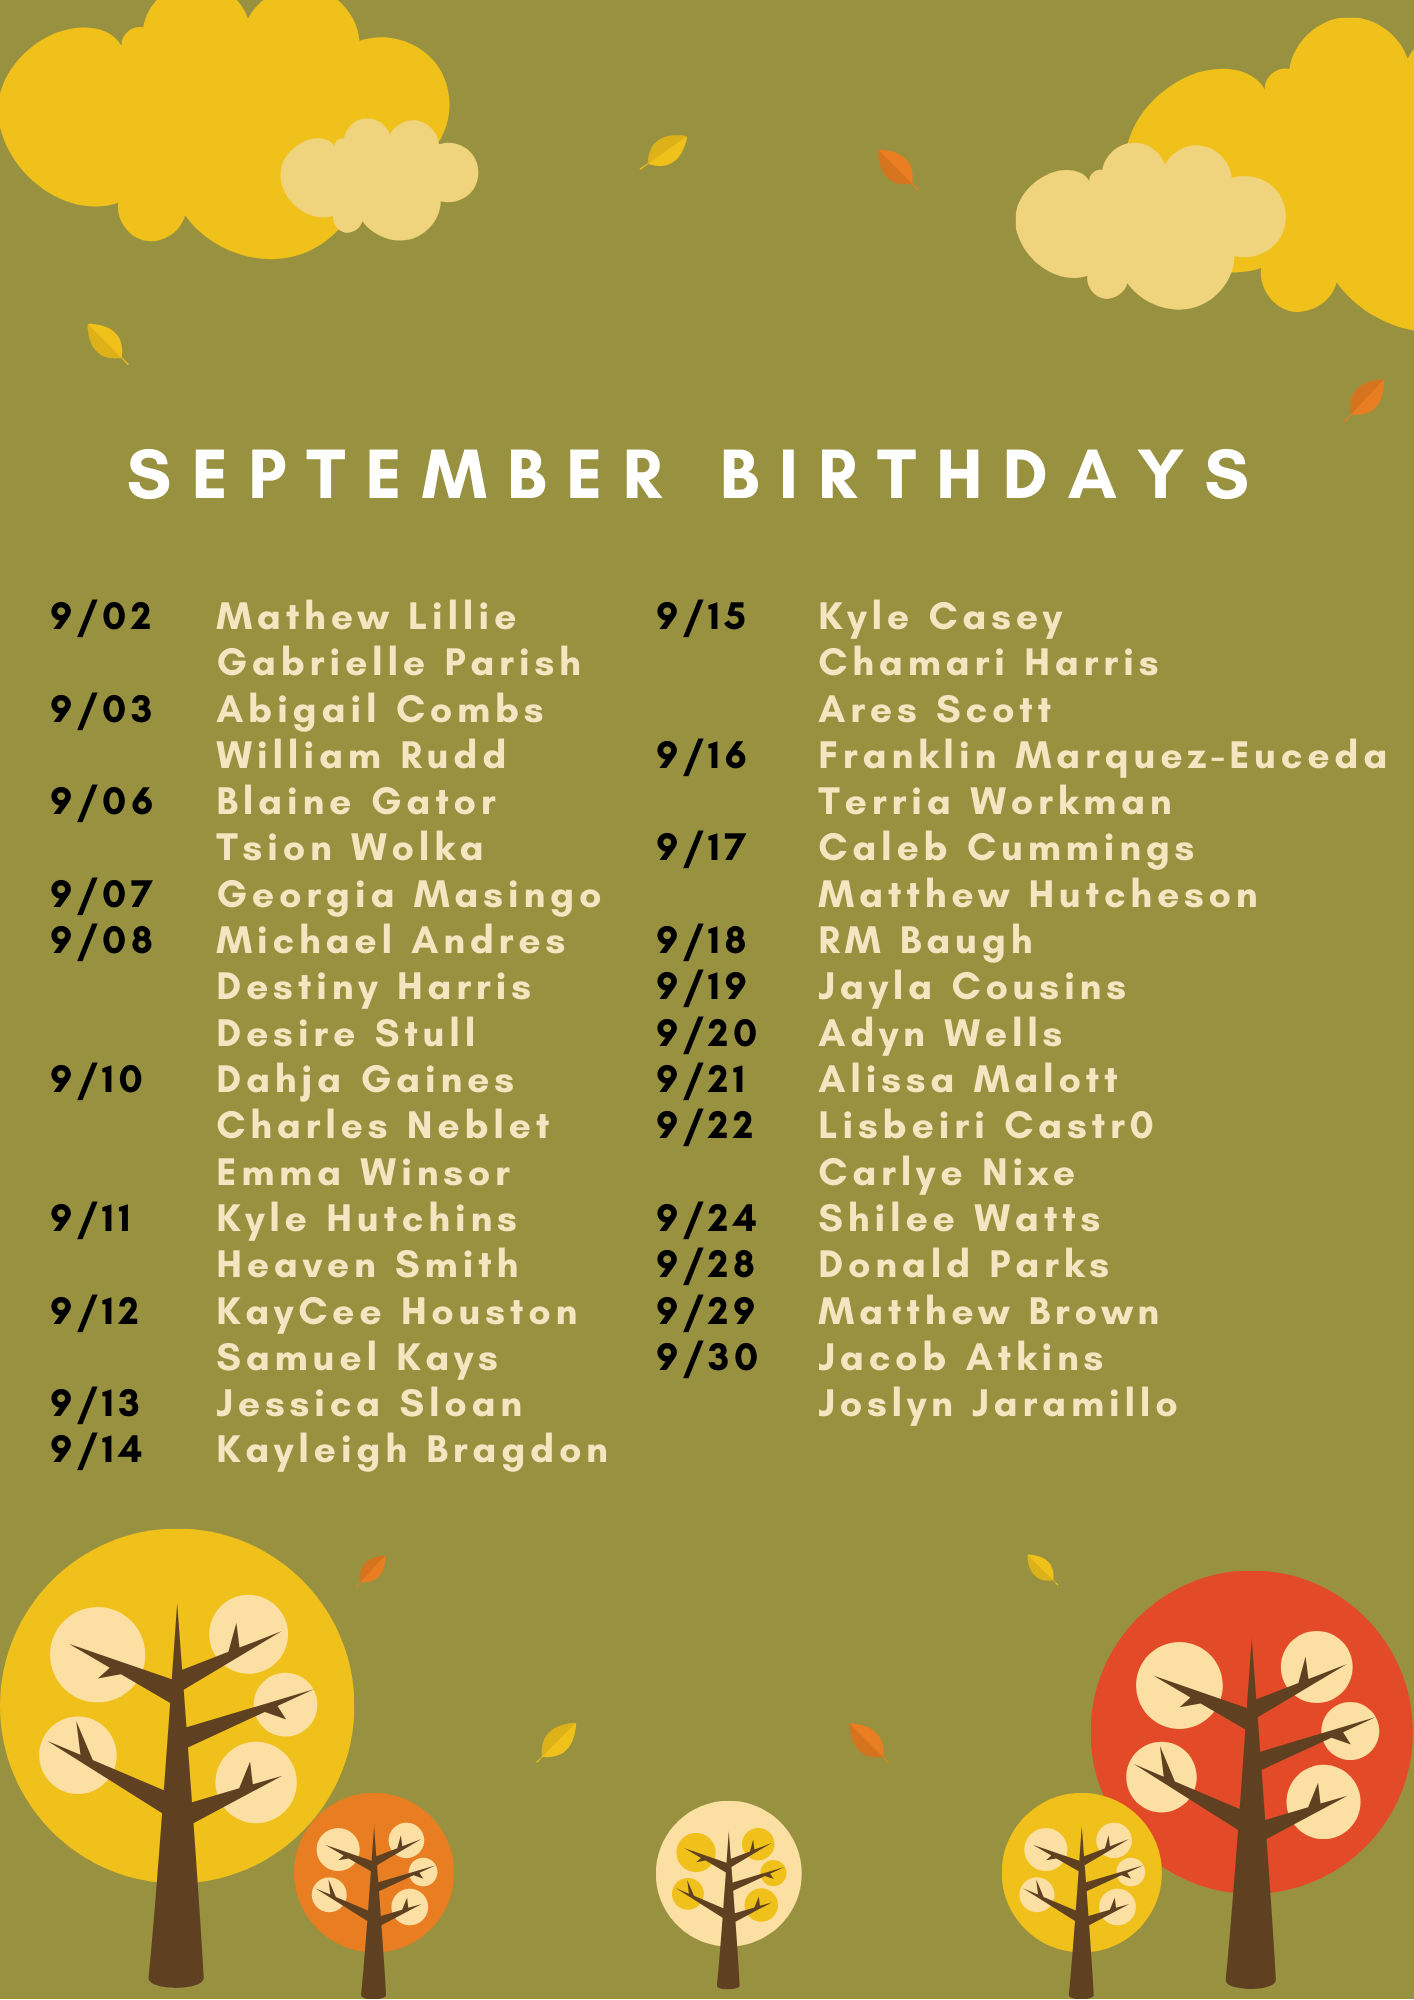 September Birthdays